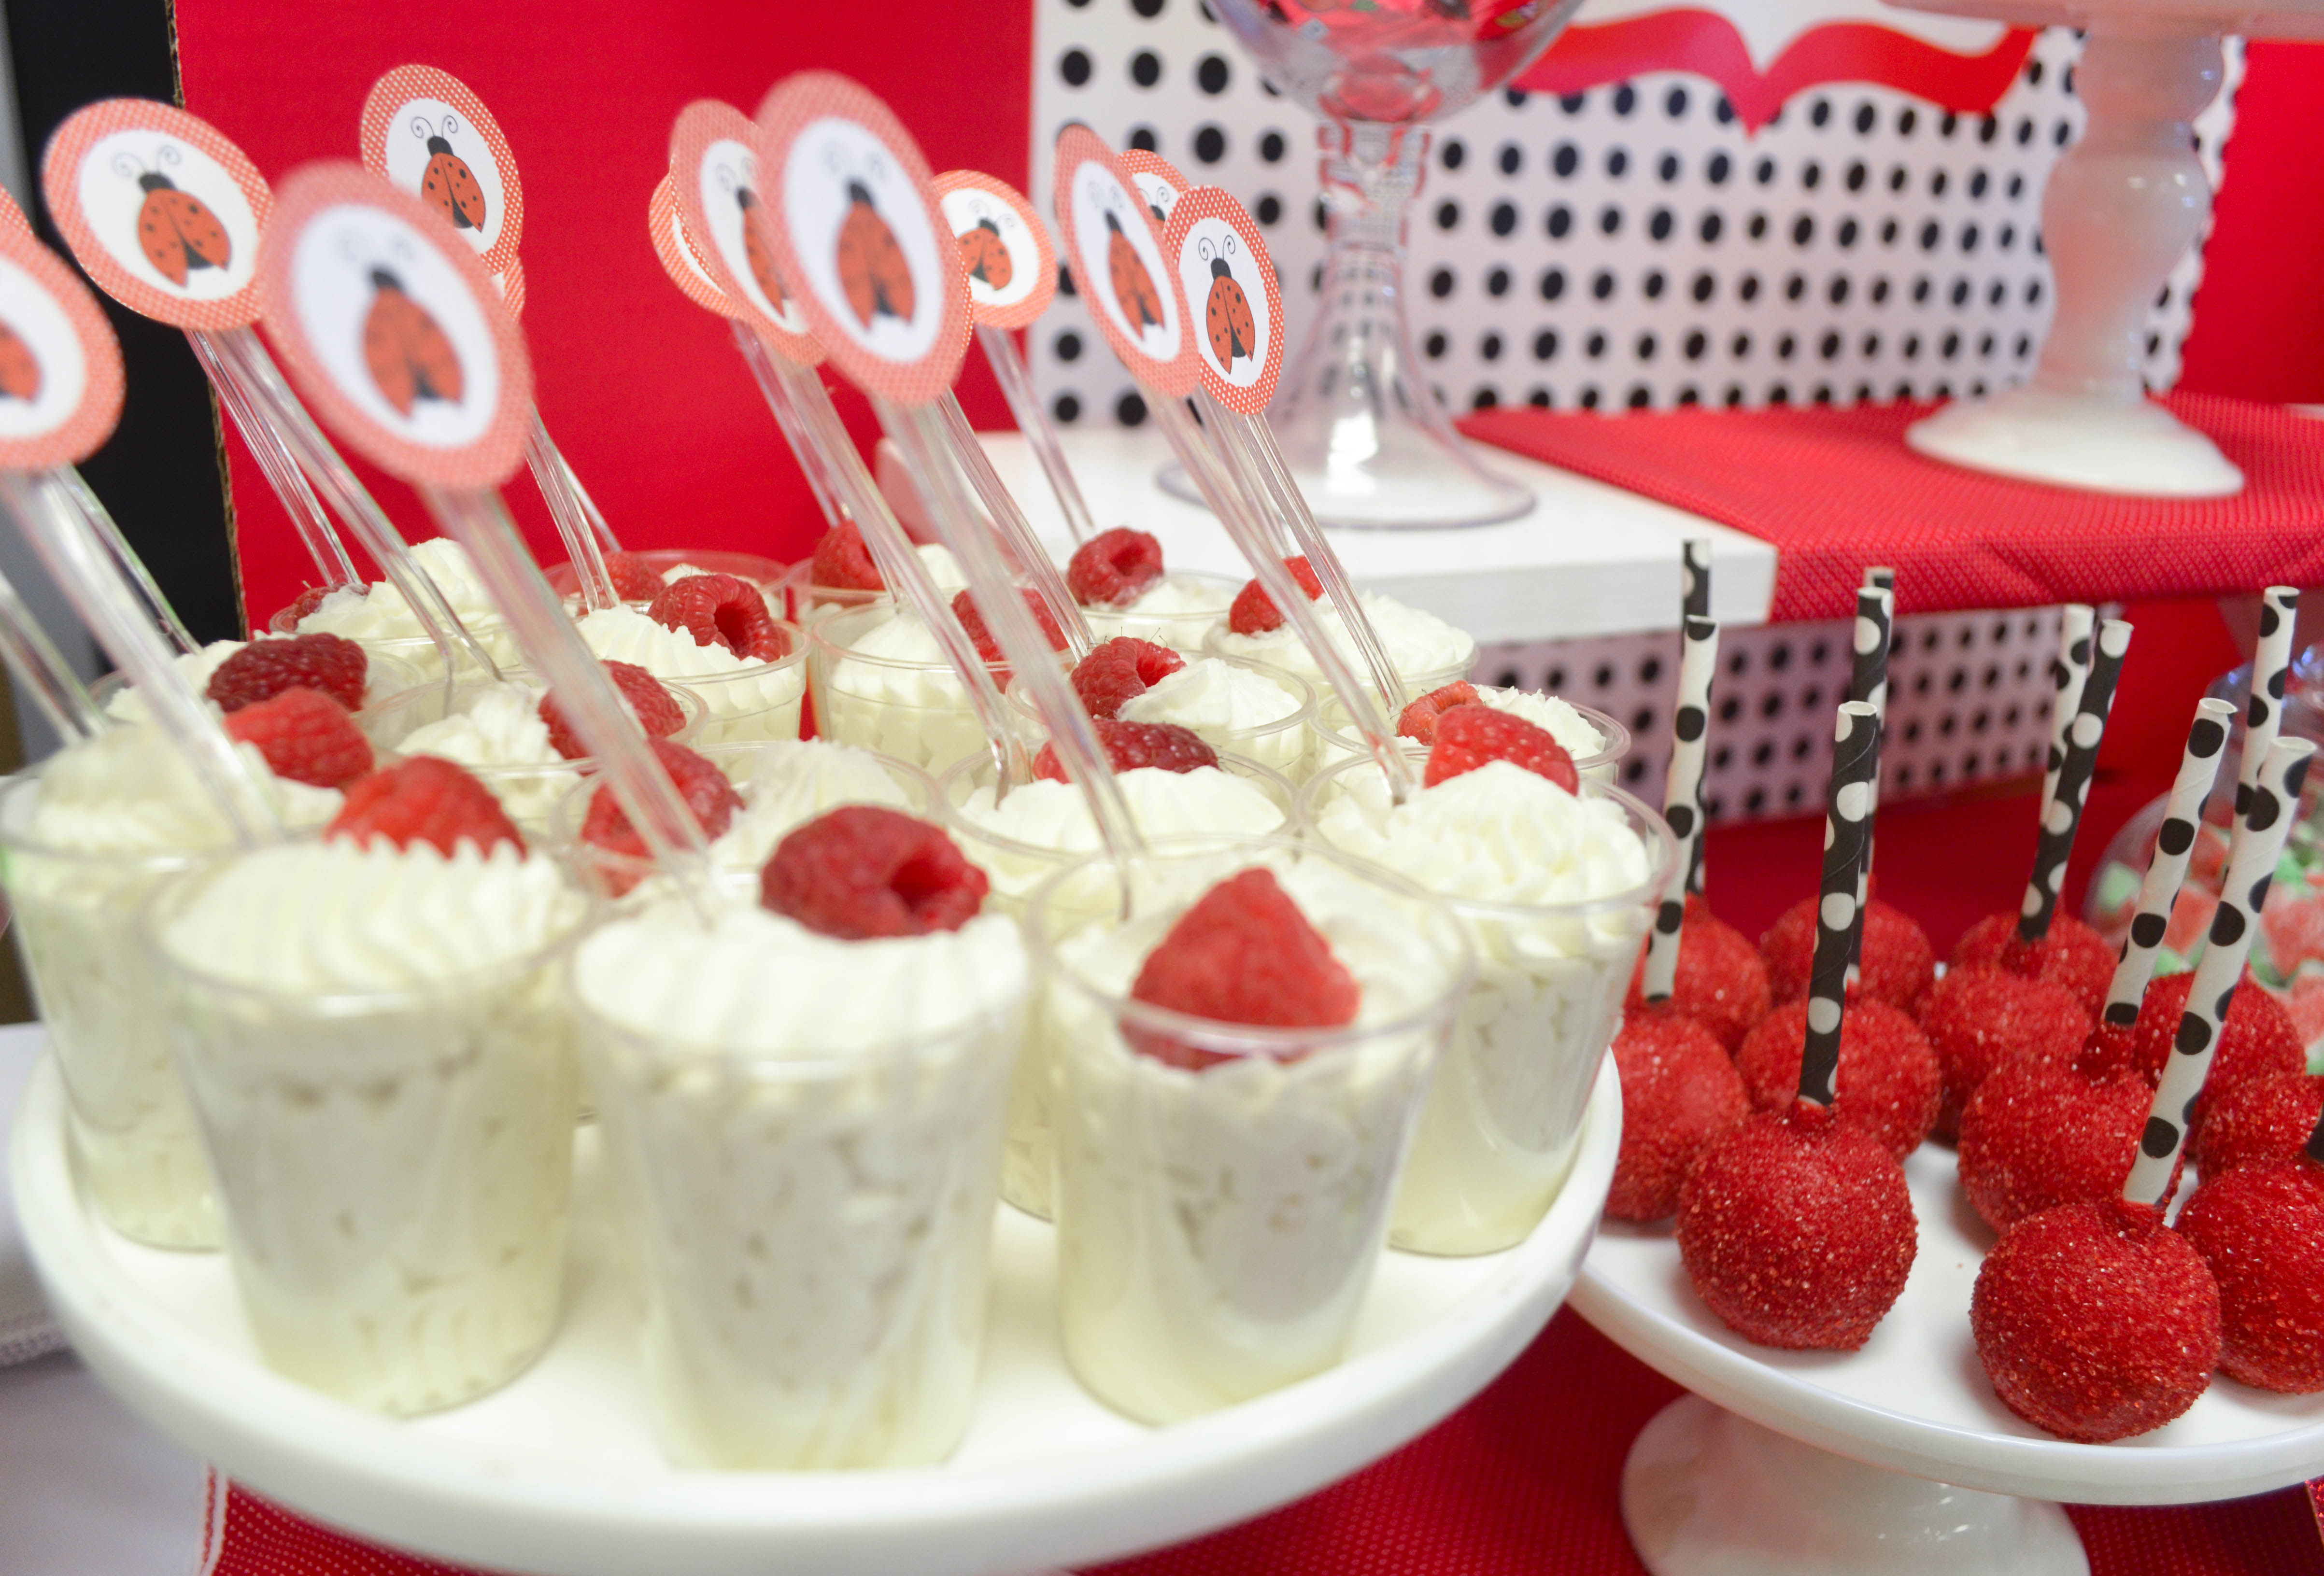 Sweet 16 Food Ideas That Give You a Reason to Party Even ... |Sweet Treats Party Table